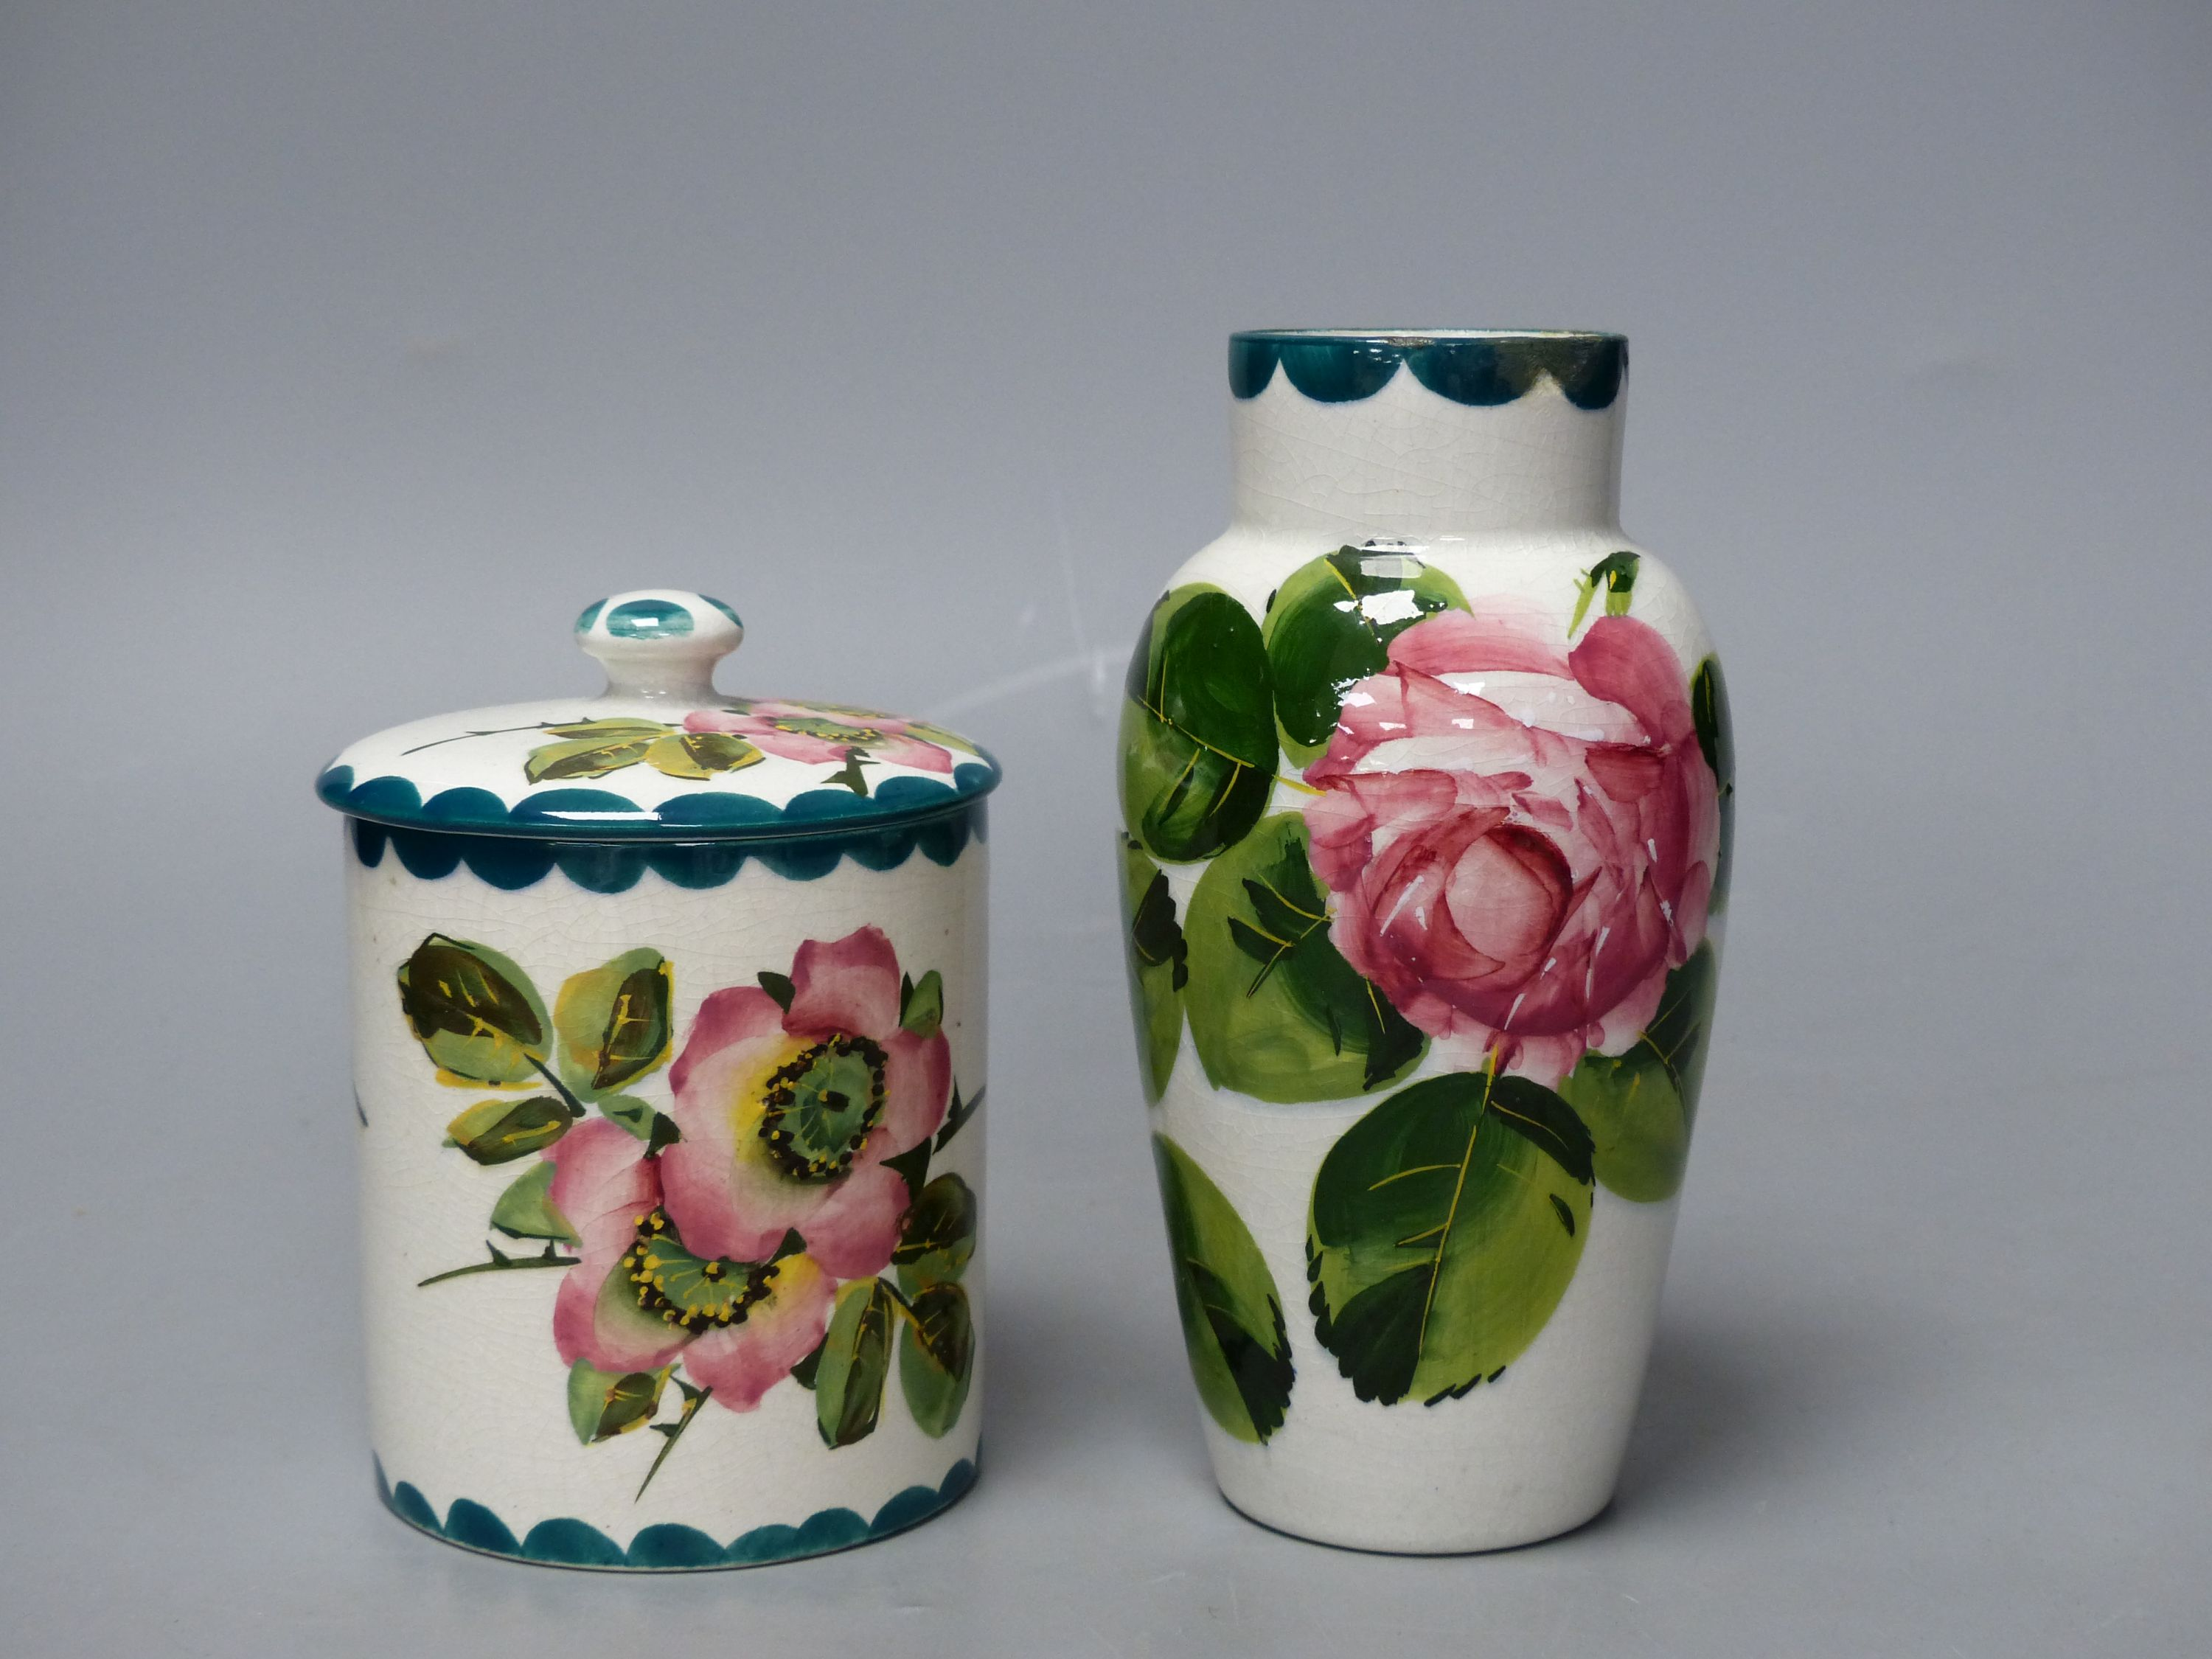 A Wemyss cabbage rose vase and an apple blossom sugar pot, tallest 16cm - Image 4 of 5